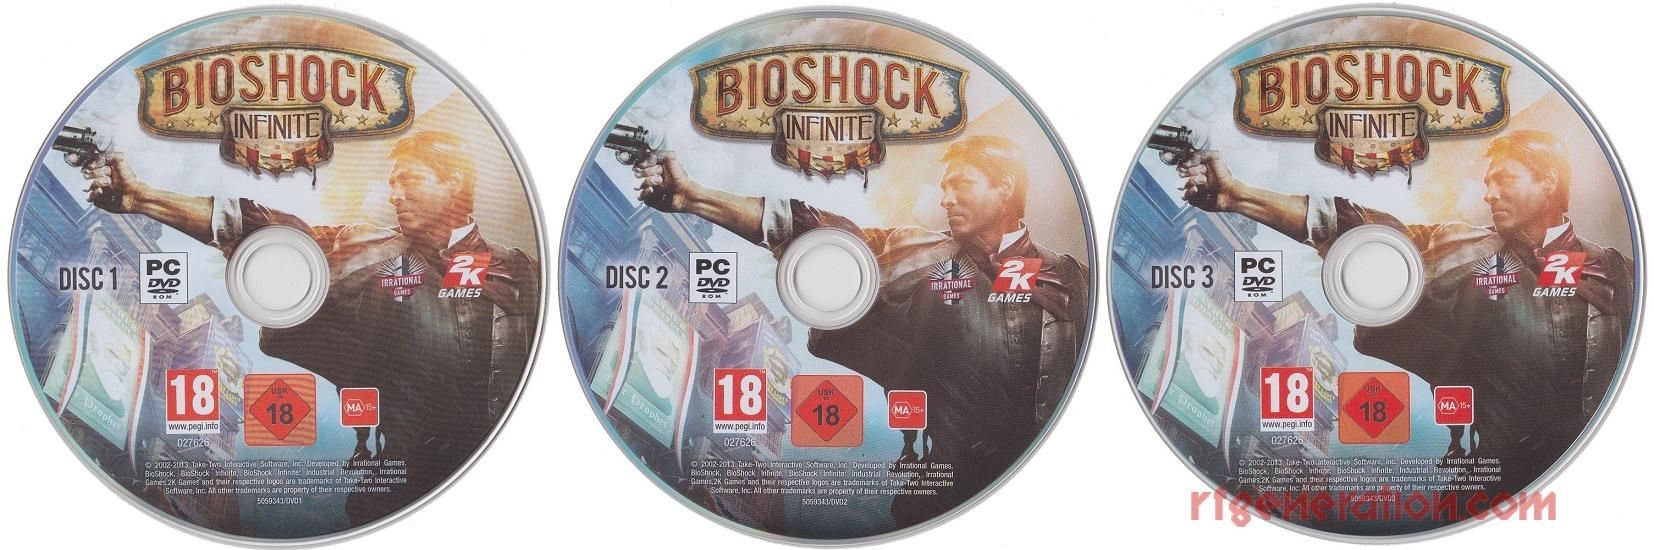 Bioshock Infinite <sup>[Premium Edition]</sup> Game Scan